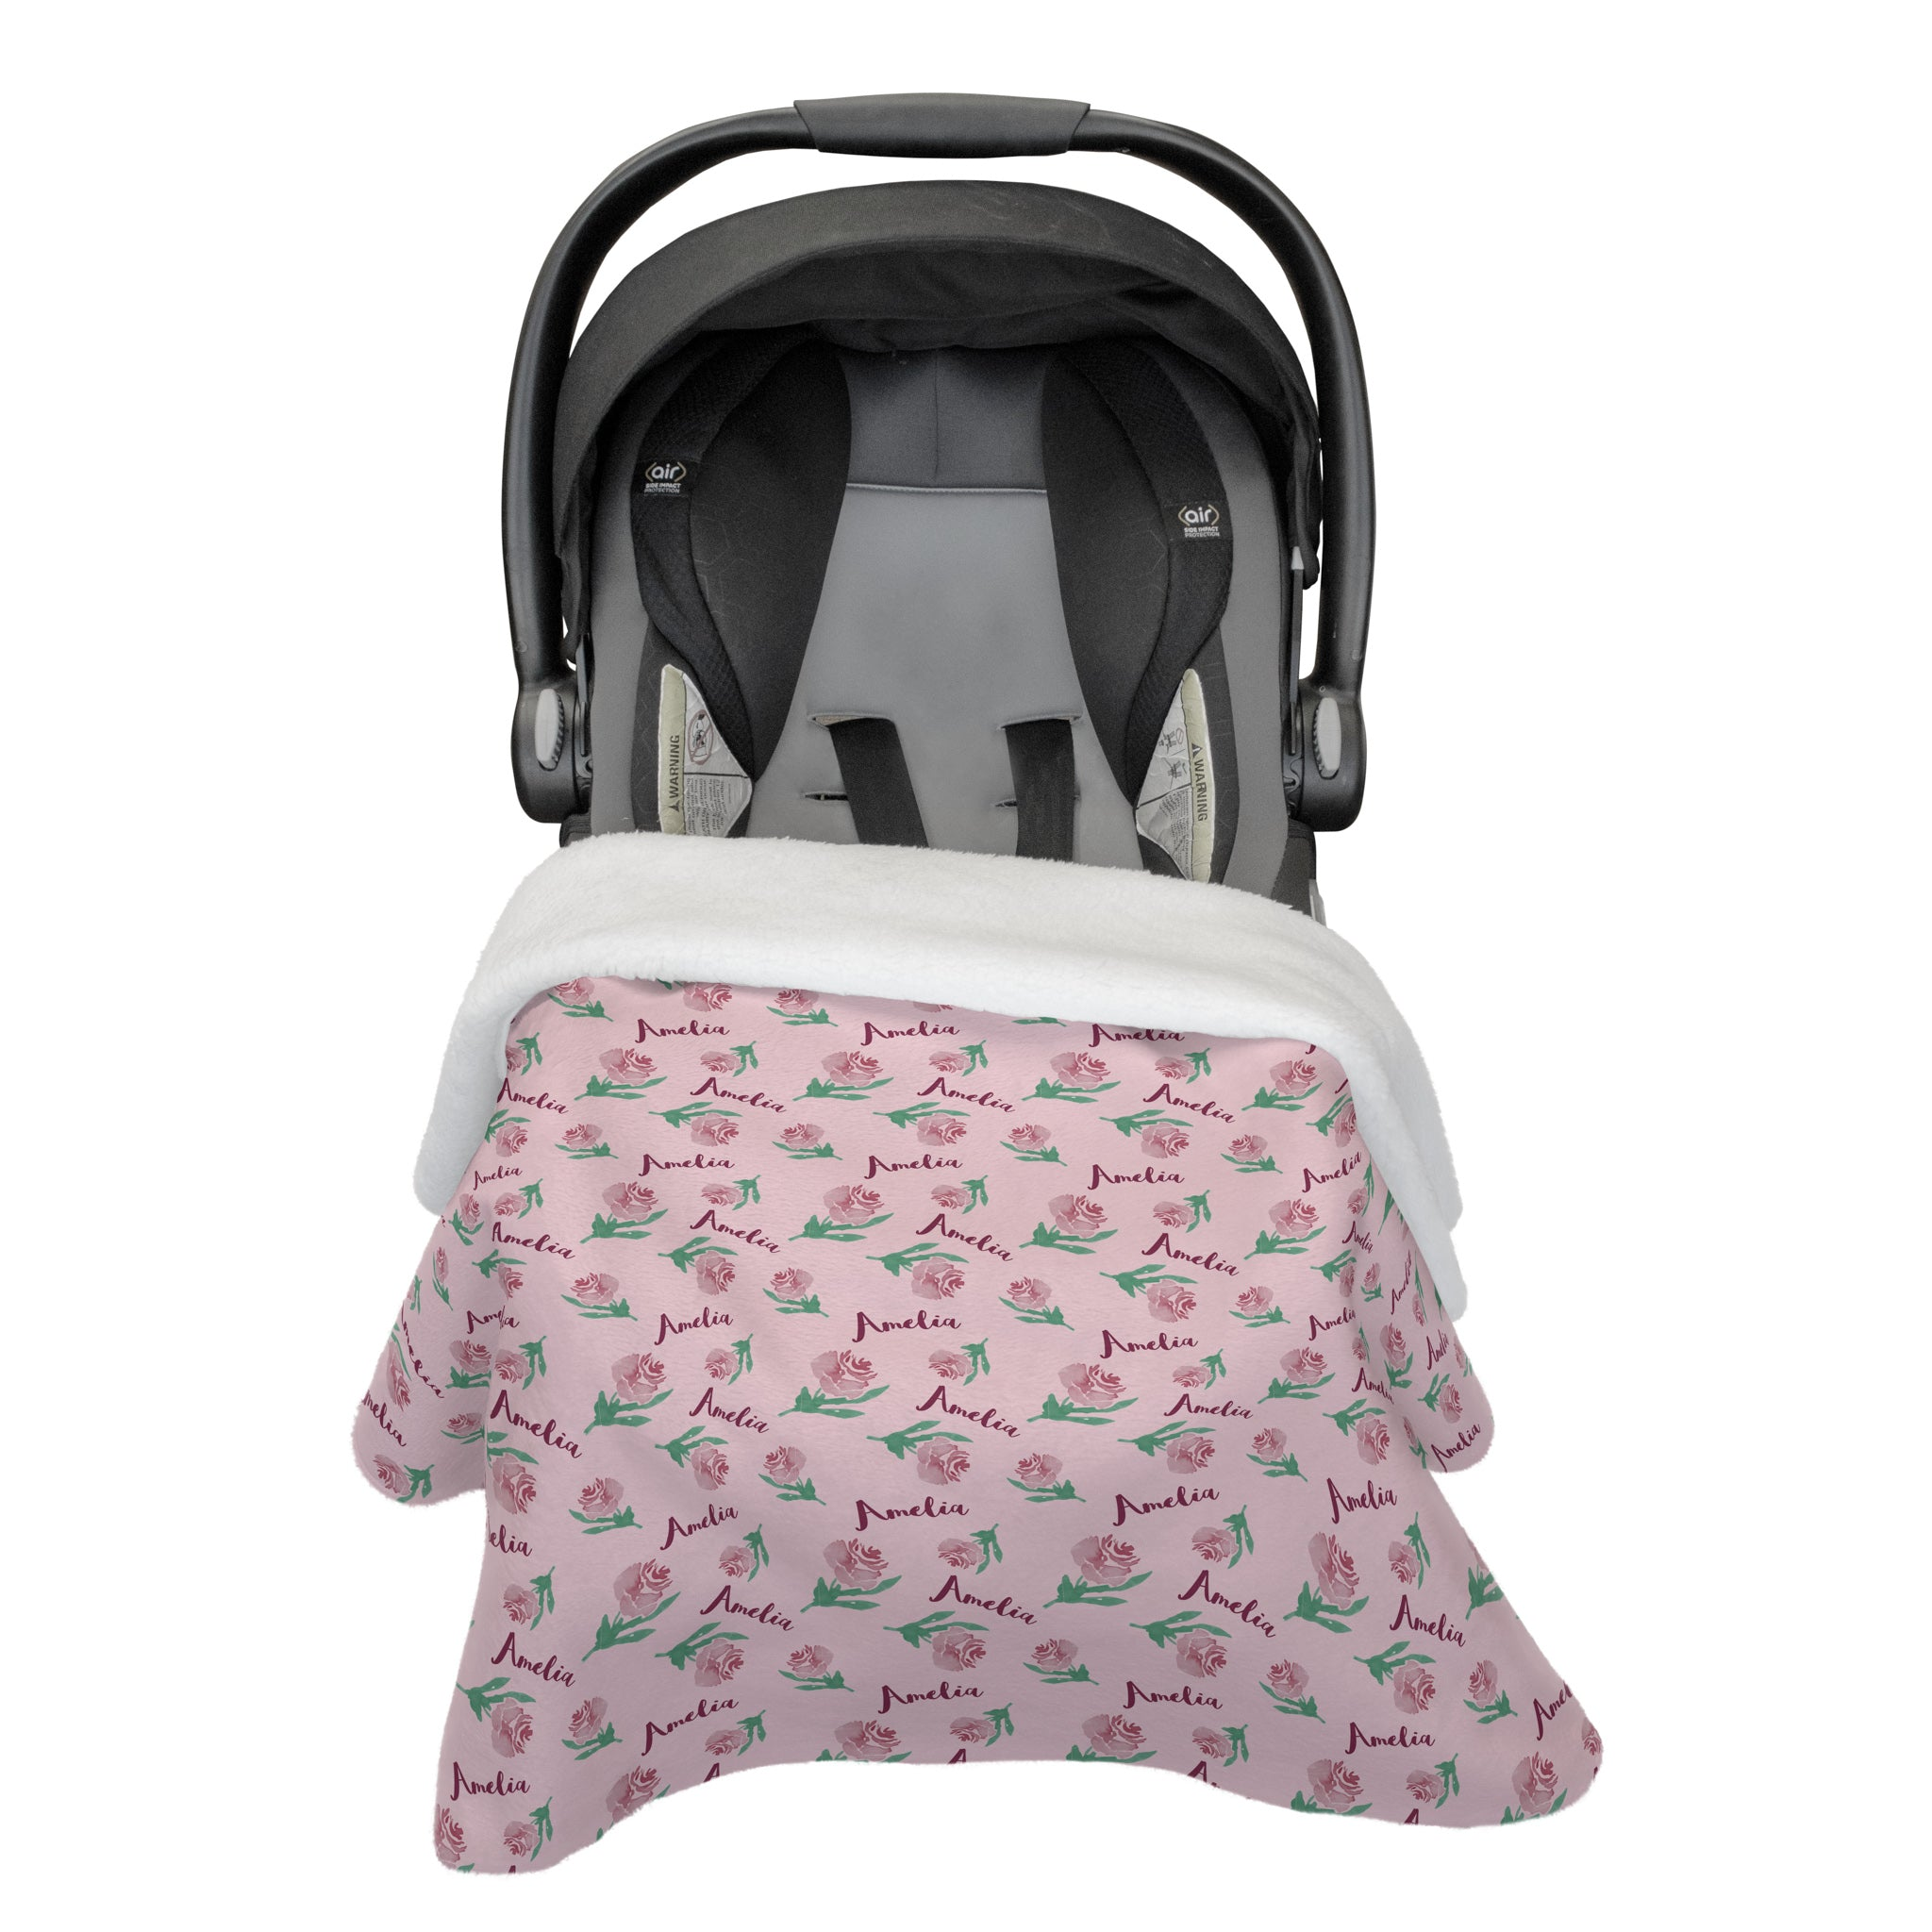 Amelia's Antique Rose | Vintage Violet | Car Seat Blanket